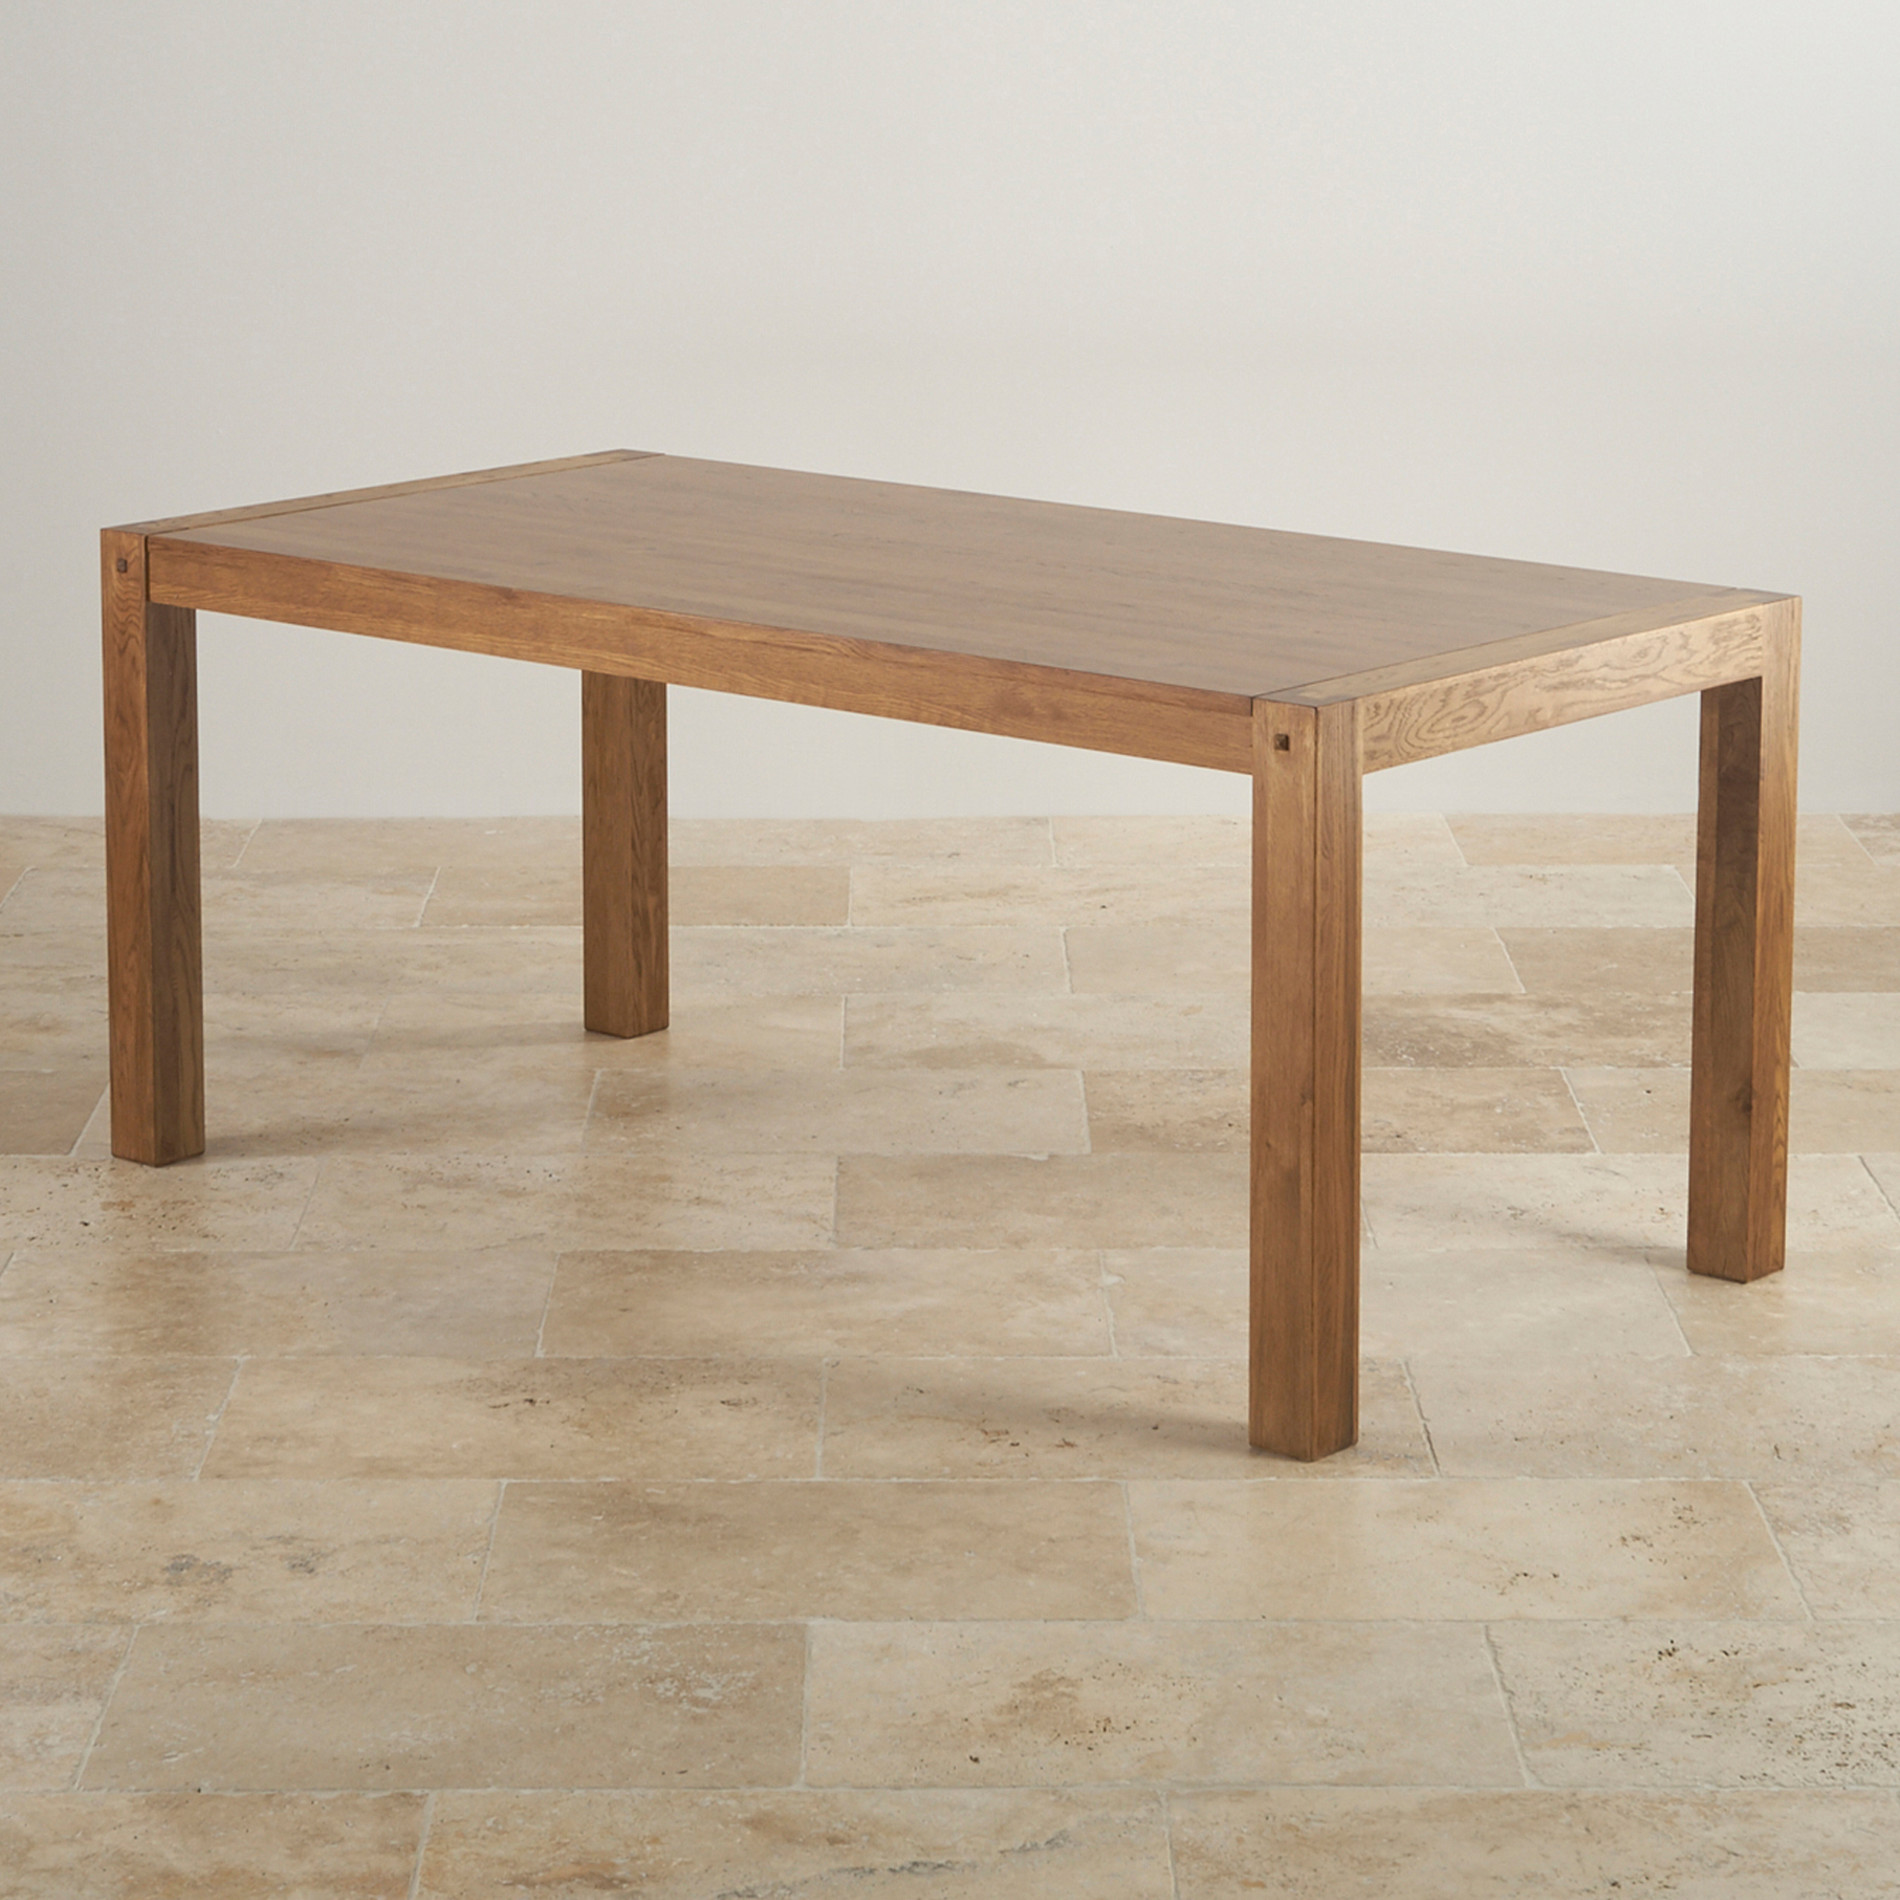 Quercus Rustic Solid Oak 6ft Dining Table